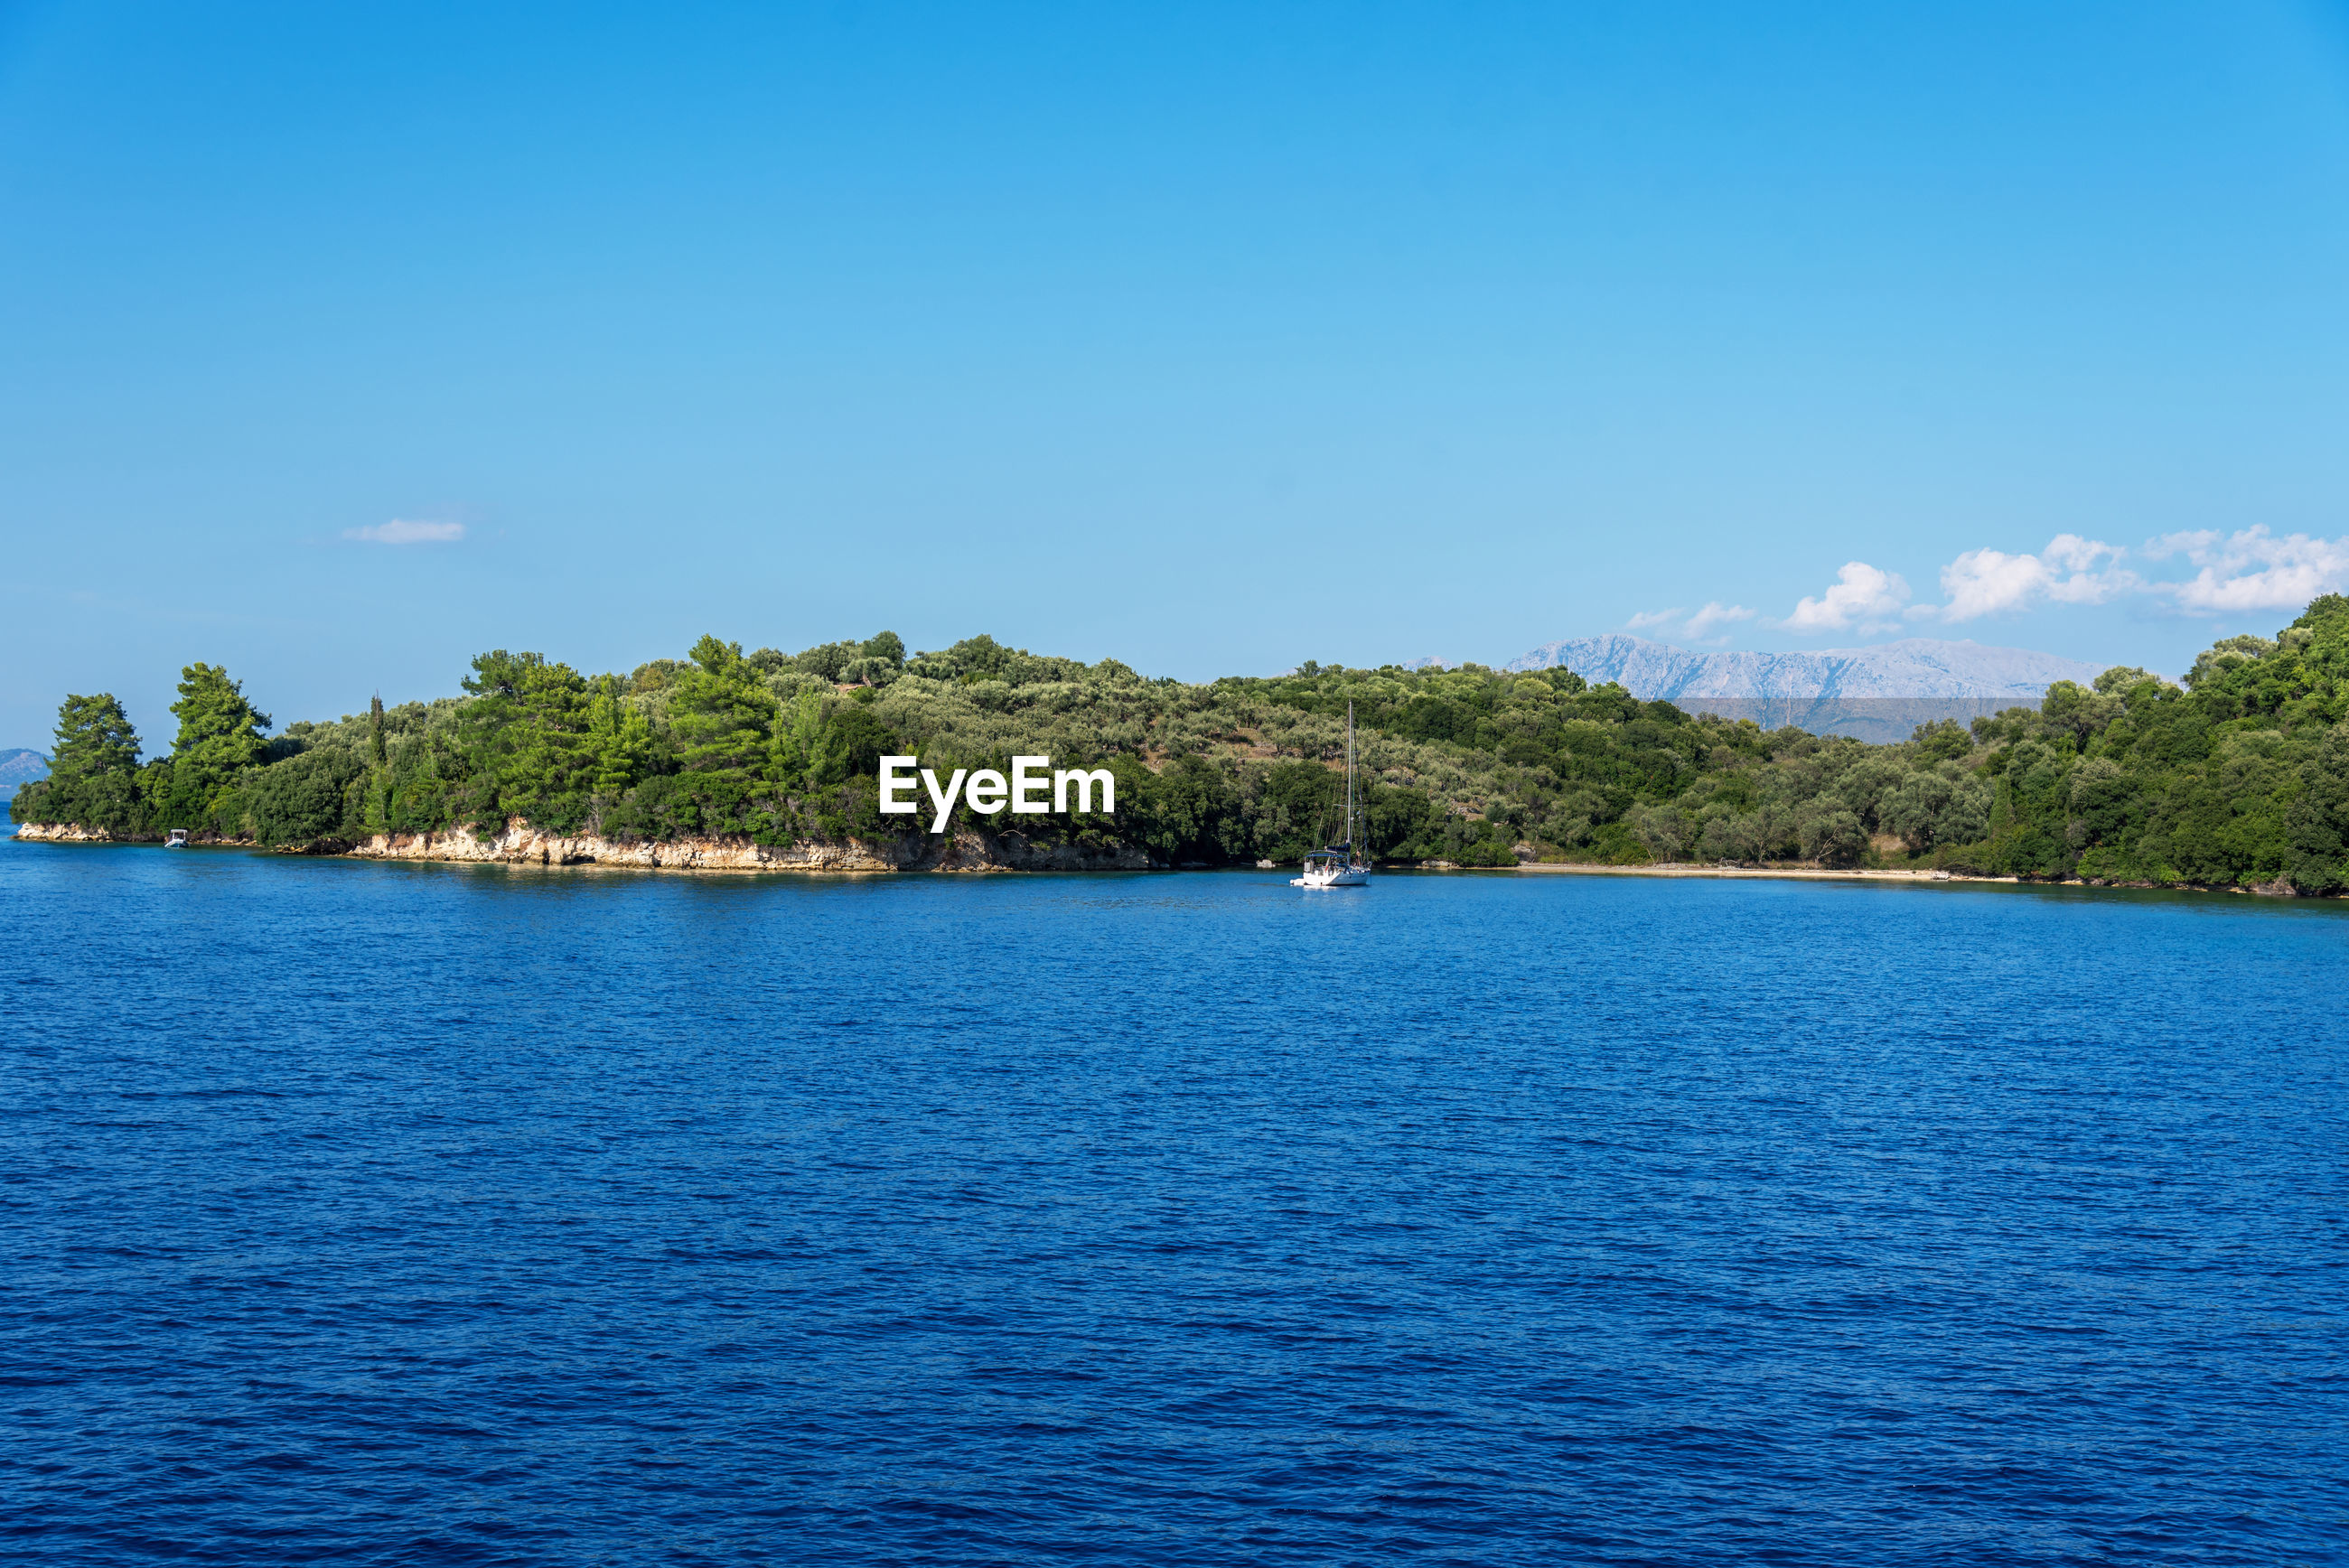 SCENIC VIEW OF SEA BY TREES AGAINST BLUE SKY